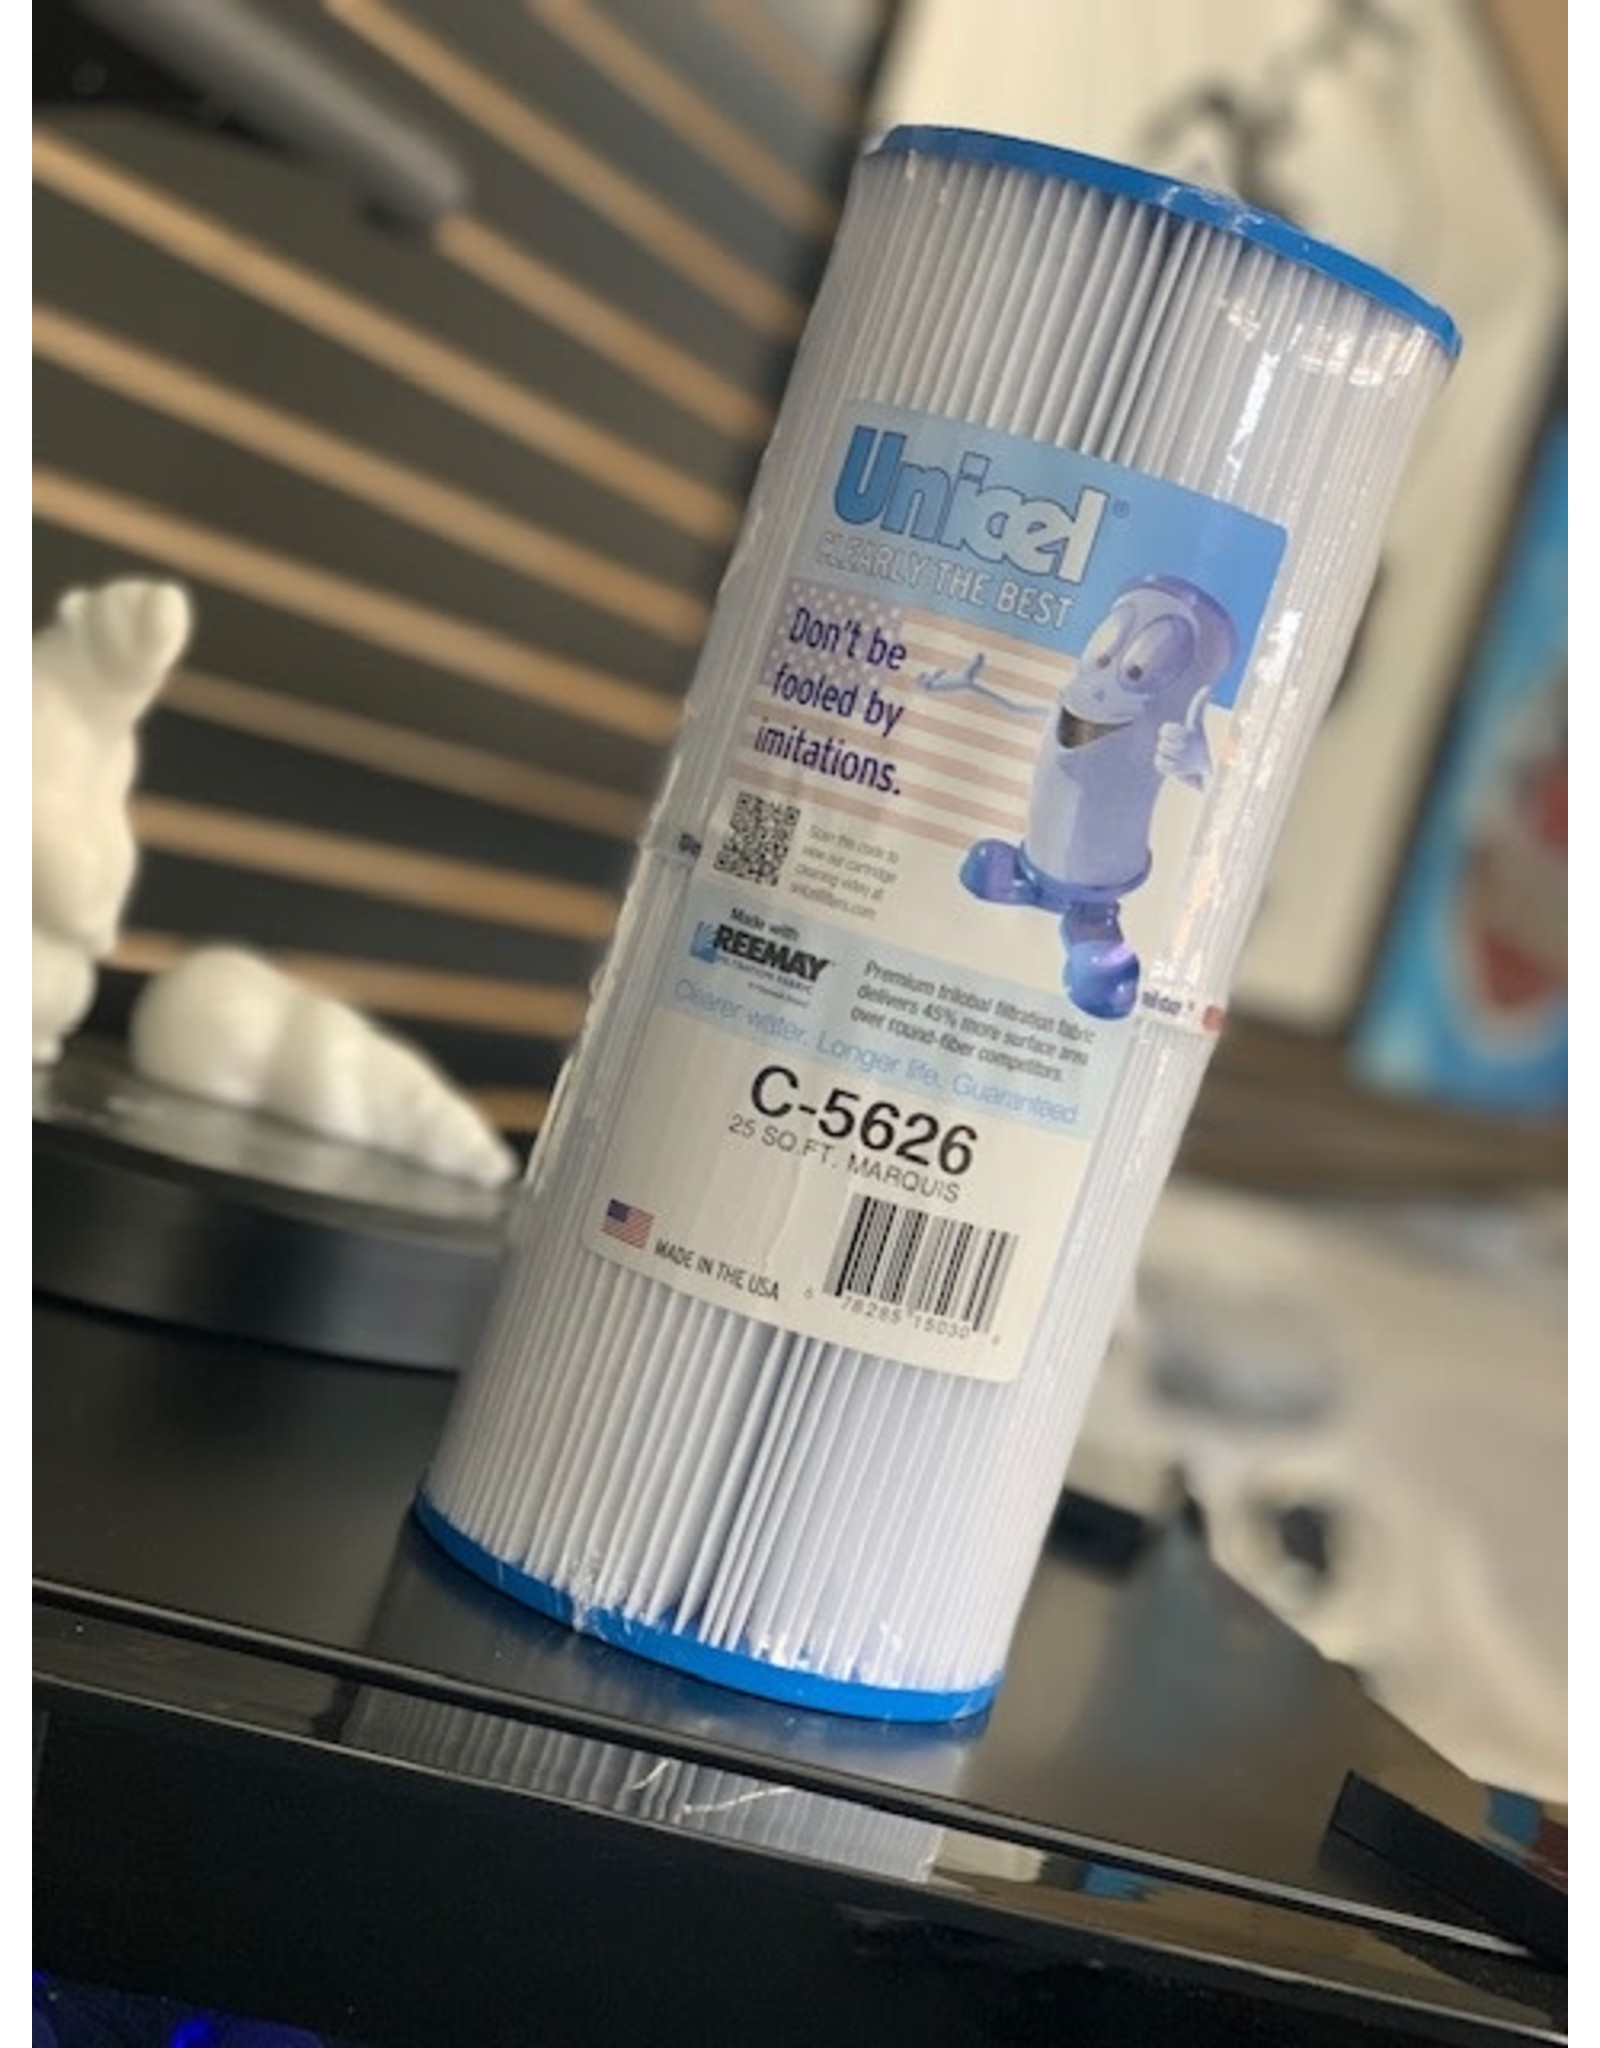 Unicel c-5626 Hot tub Filter